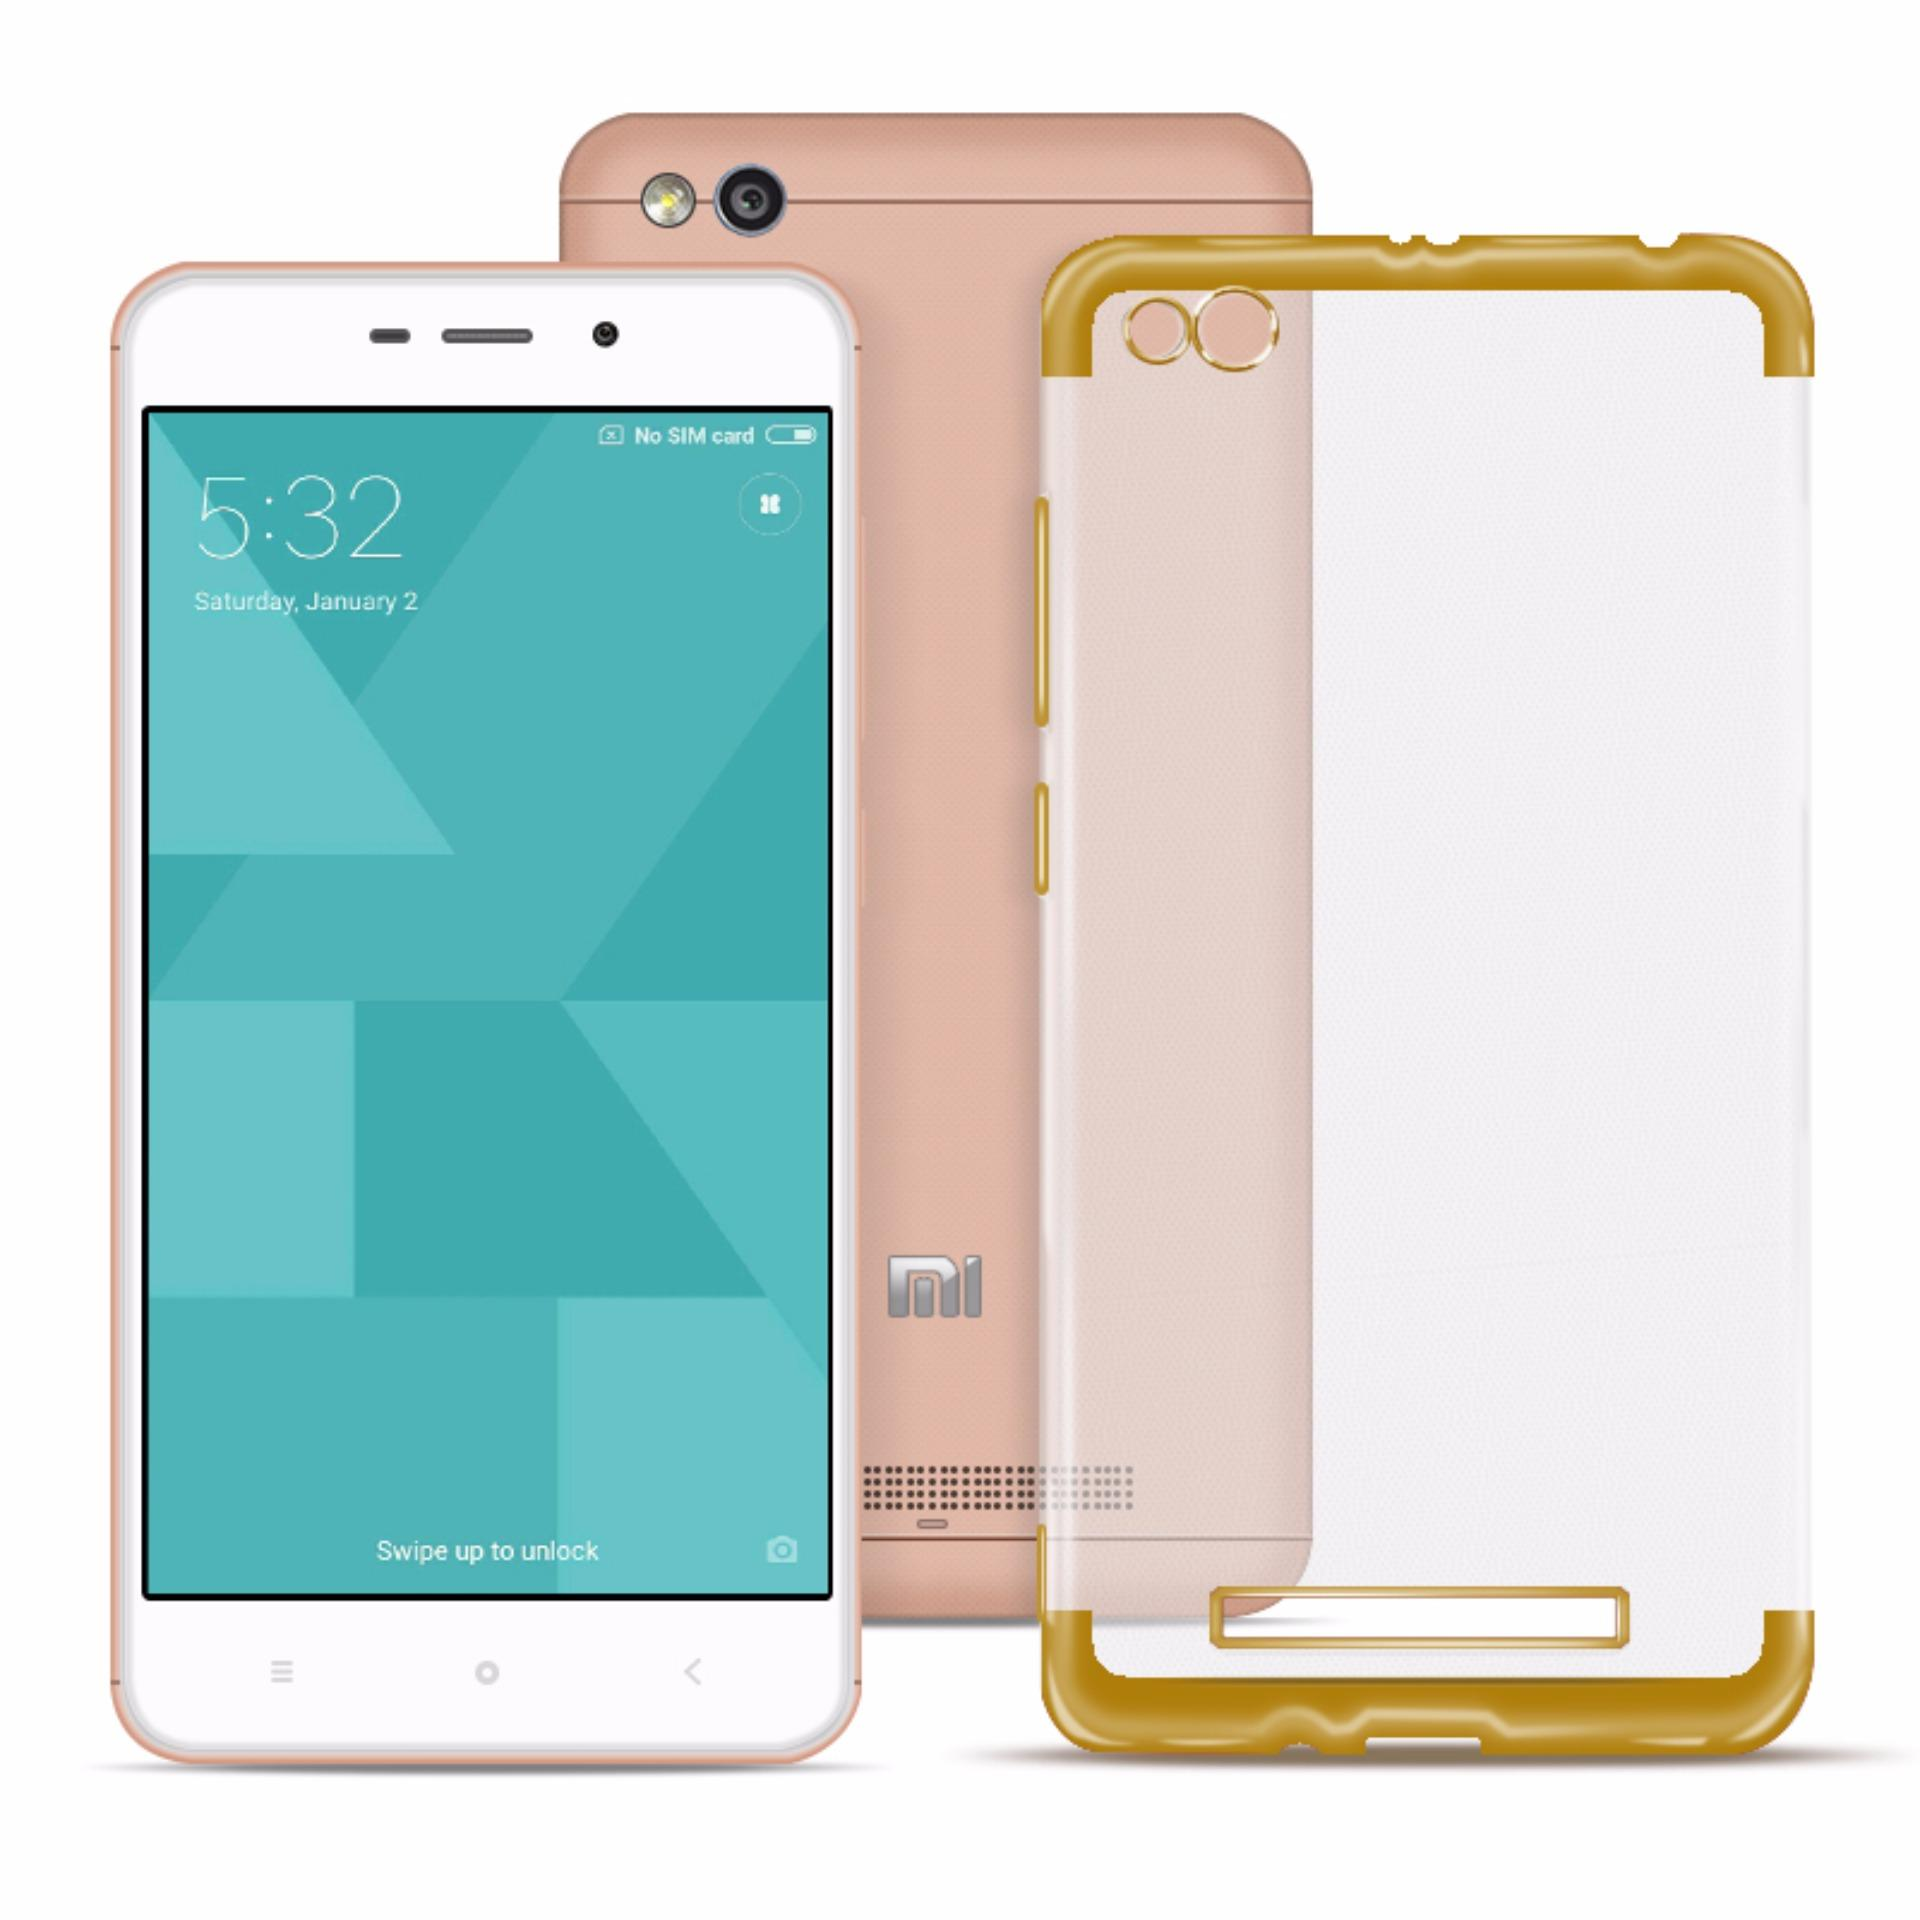 Philippines Ace Soft Tpu Jelly Case V2 For Redmi 4a Gold Clear Fitur Motomo Chrome Vivo